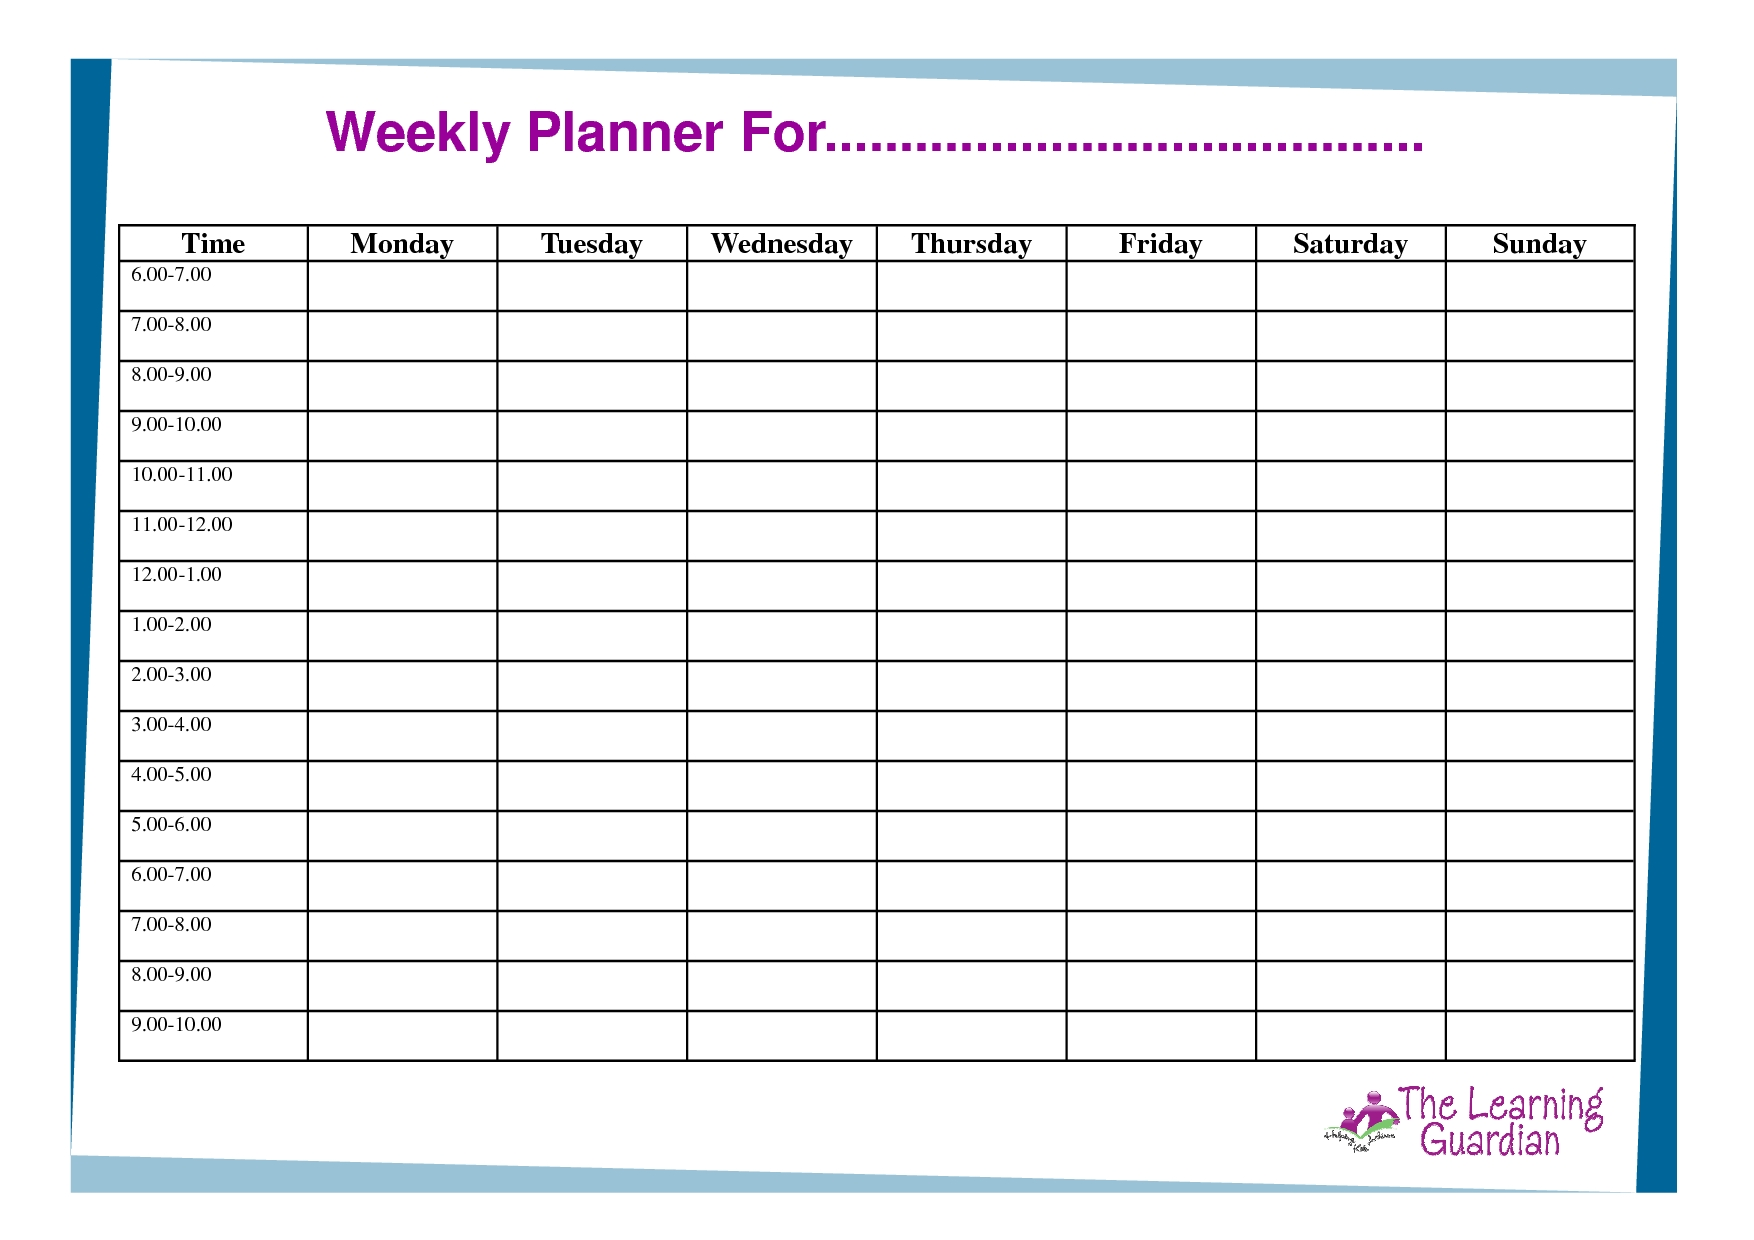 Free Printable Weekly Calendar Templates Weekly Planner For Time  Xjb